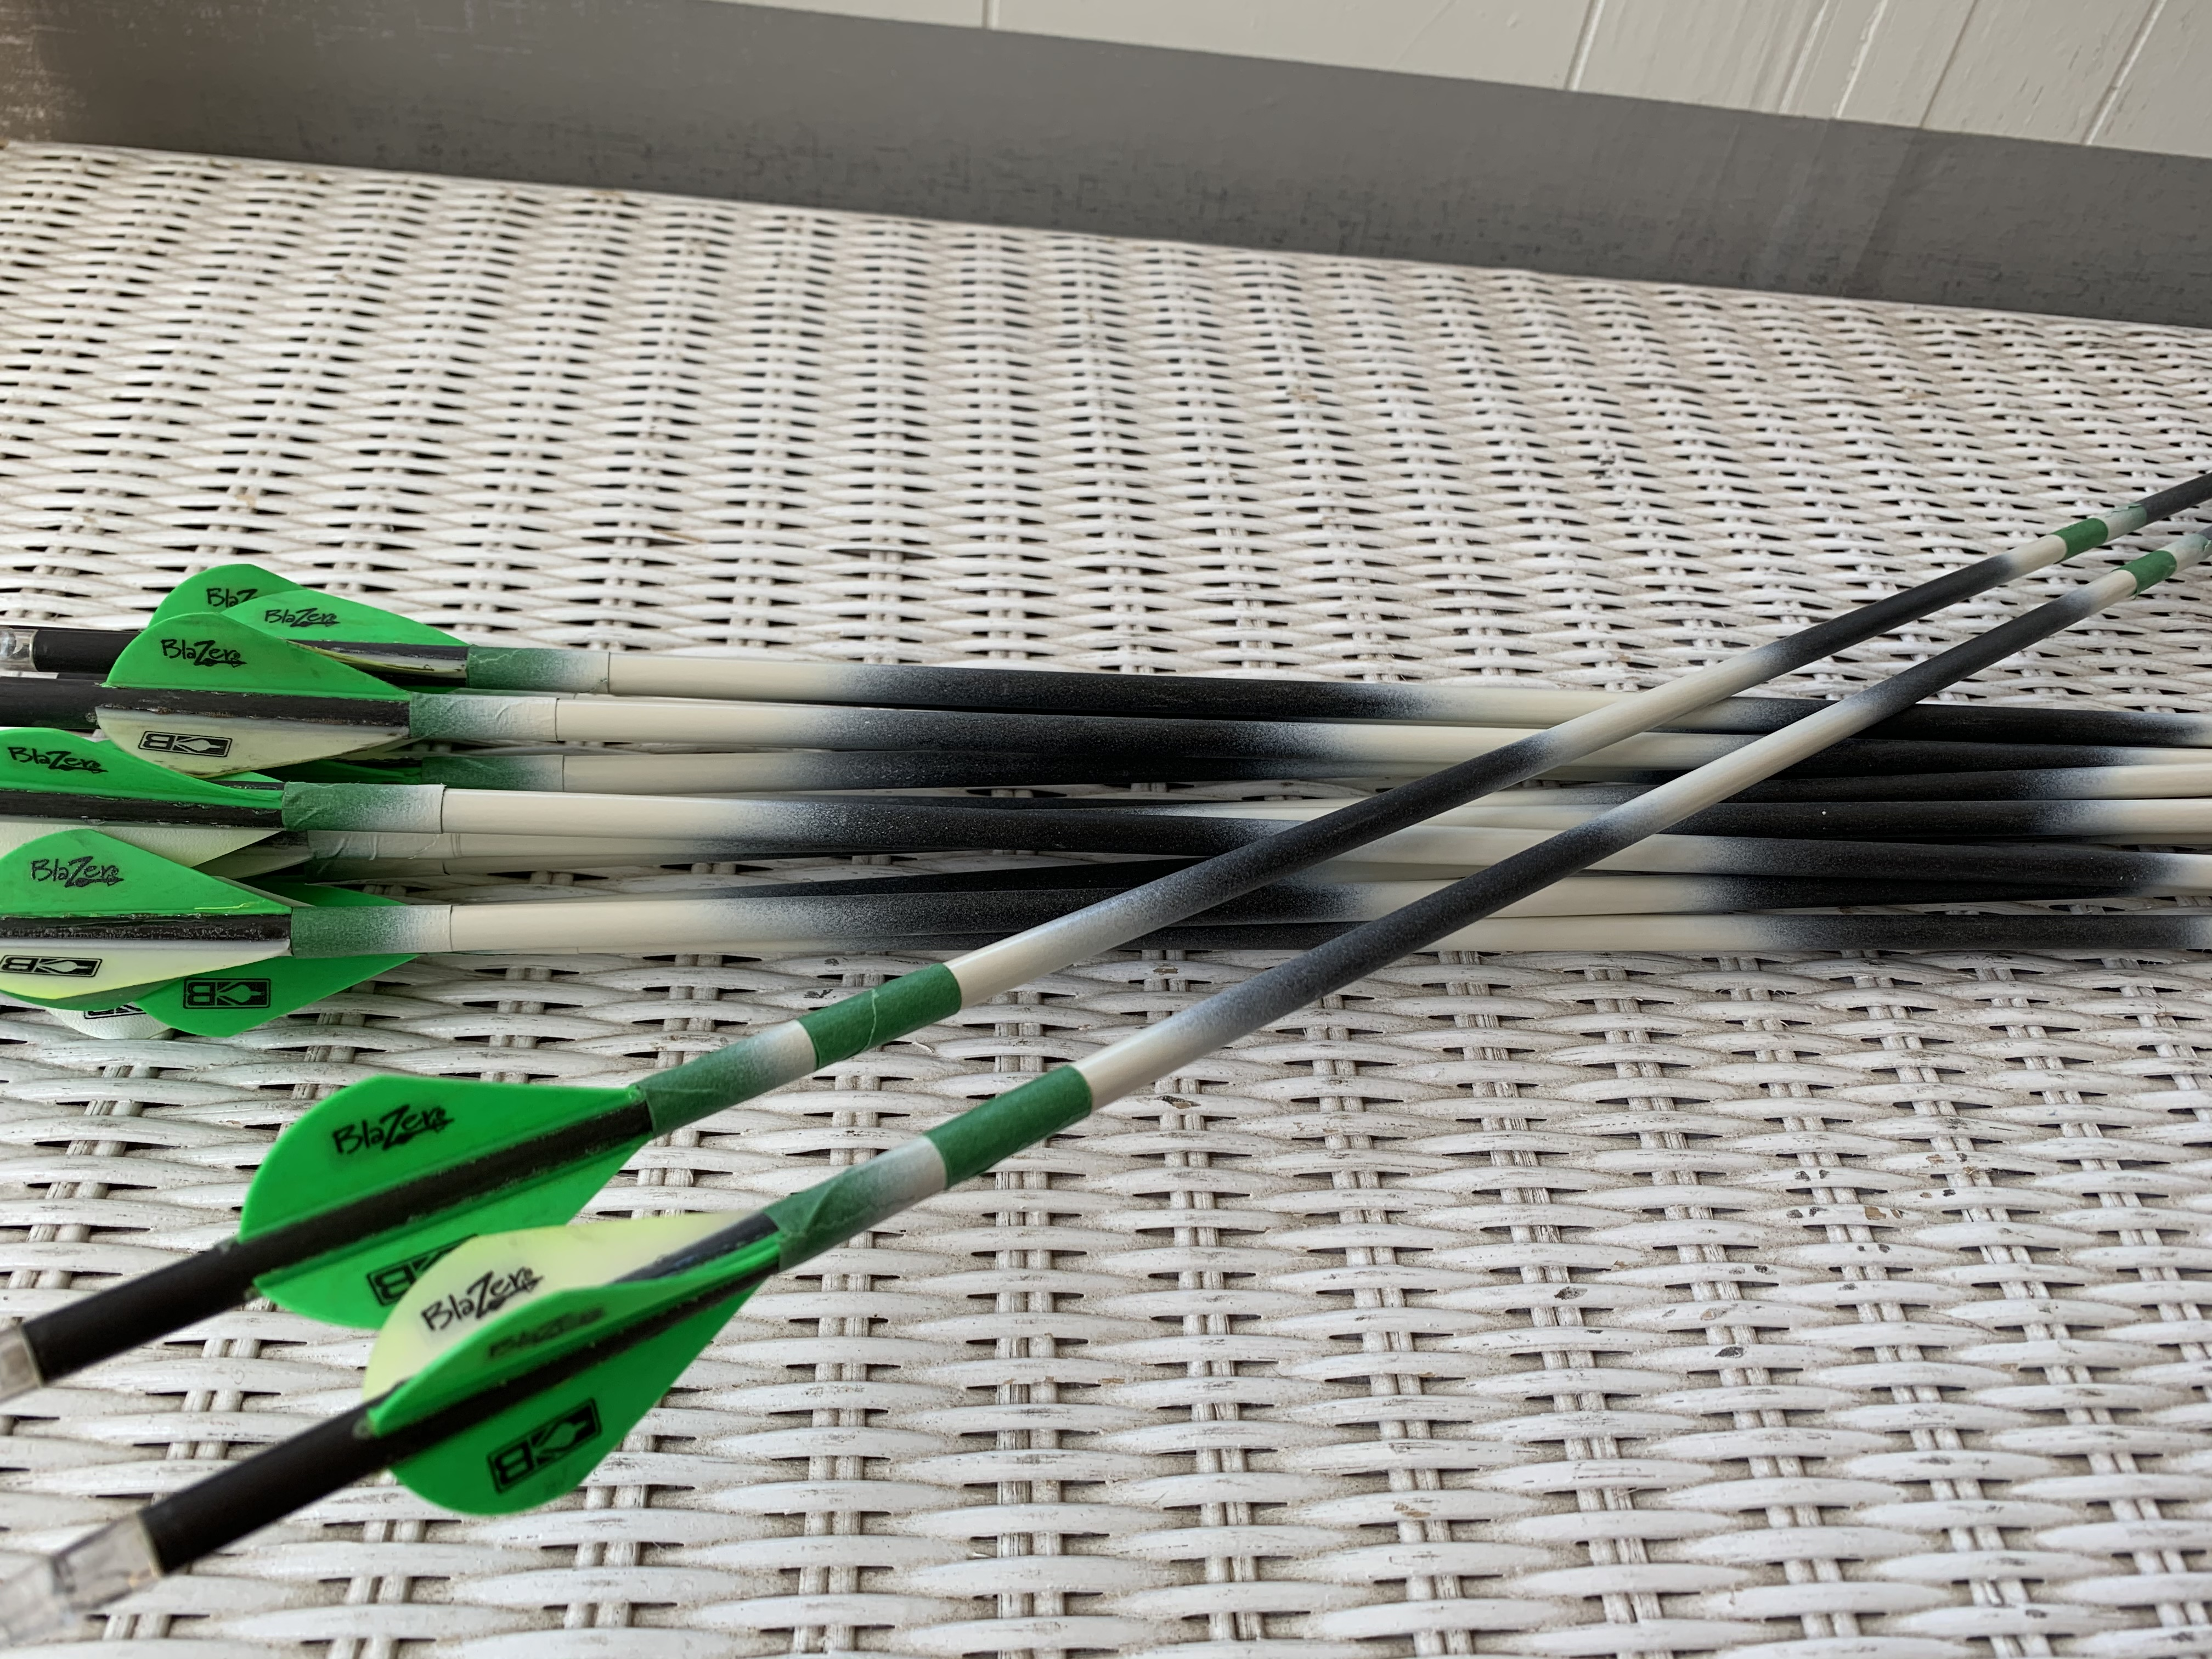 taping over spray paint on arrows